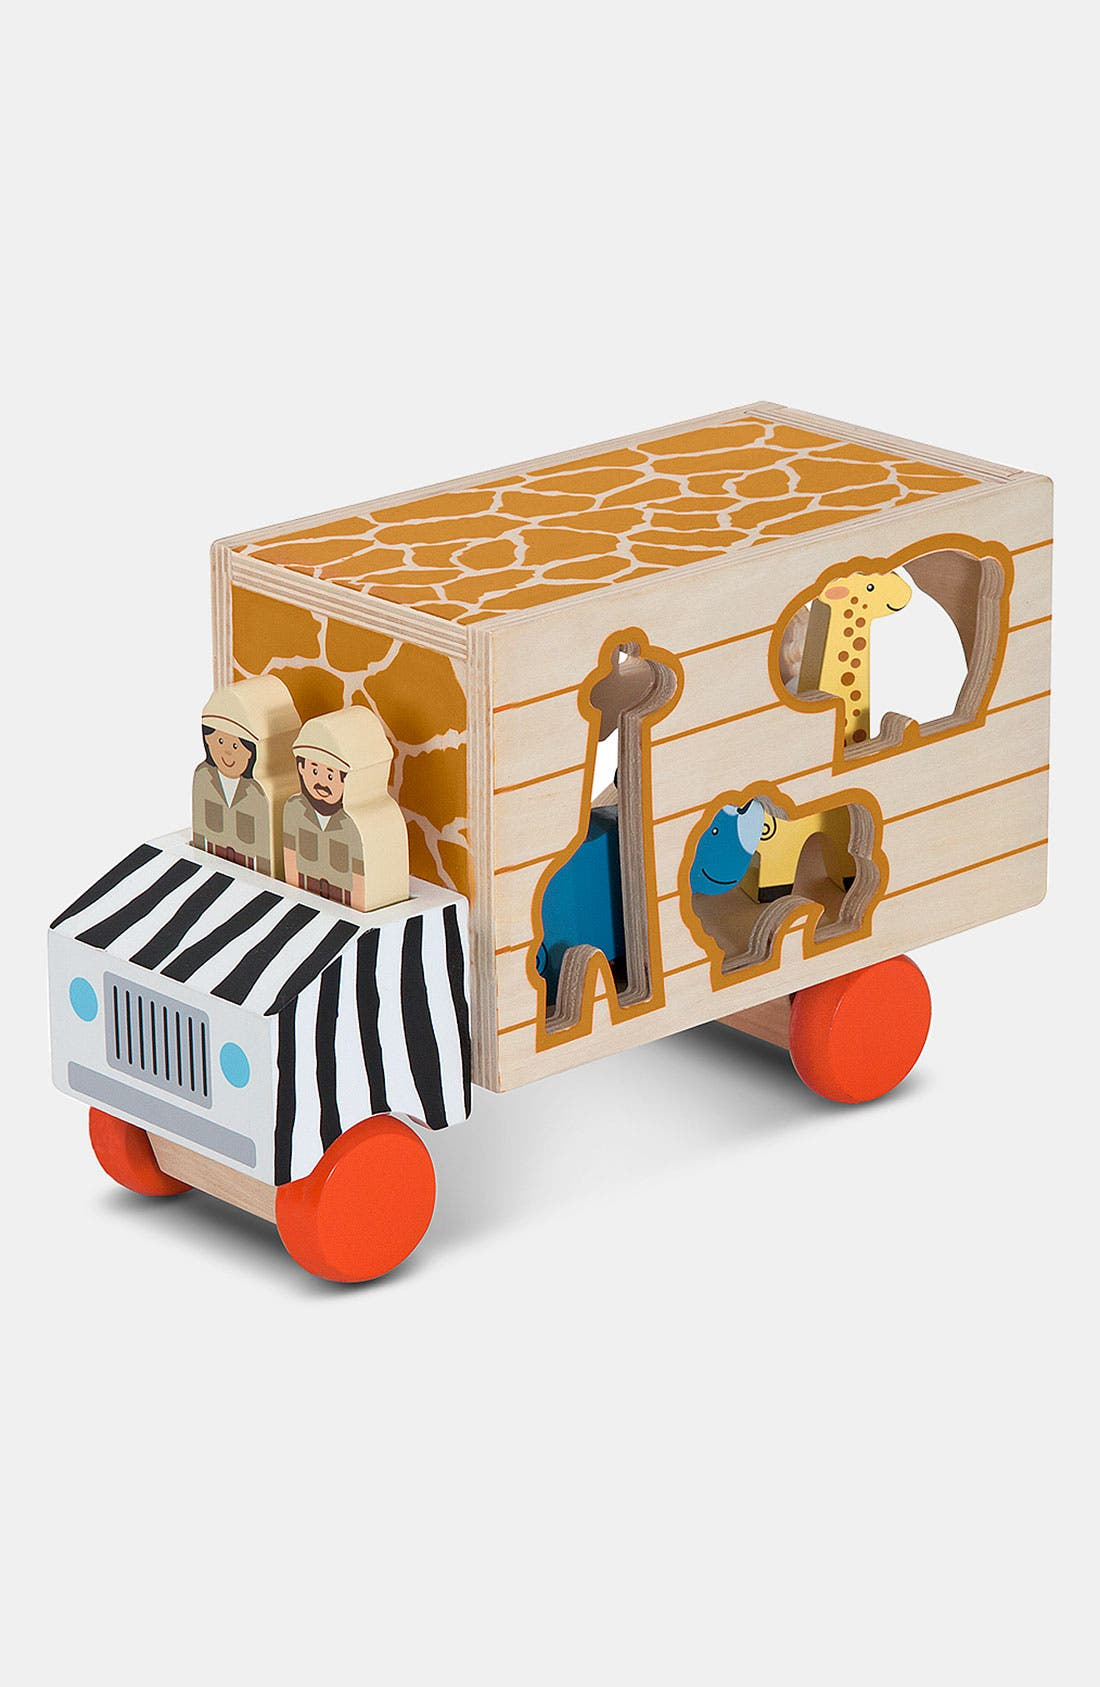 'Animal Rescue' Shape Sorting Wooden Truck Toy,                             Main thumbnail 1, color,                             Brown